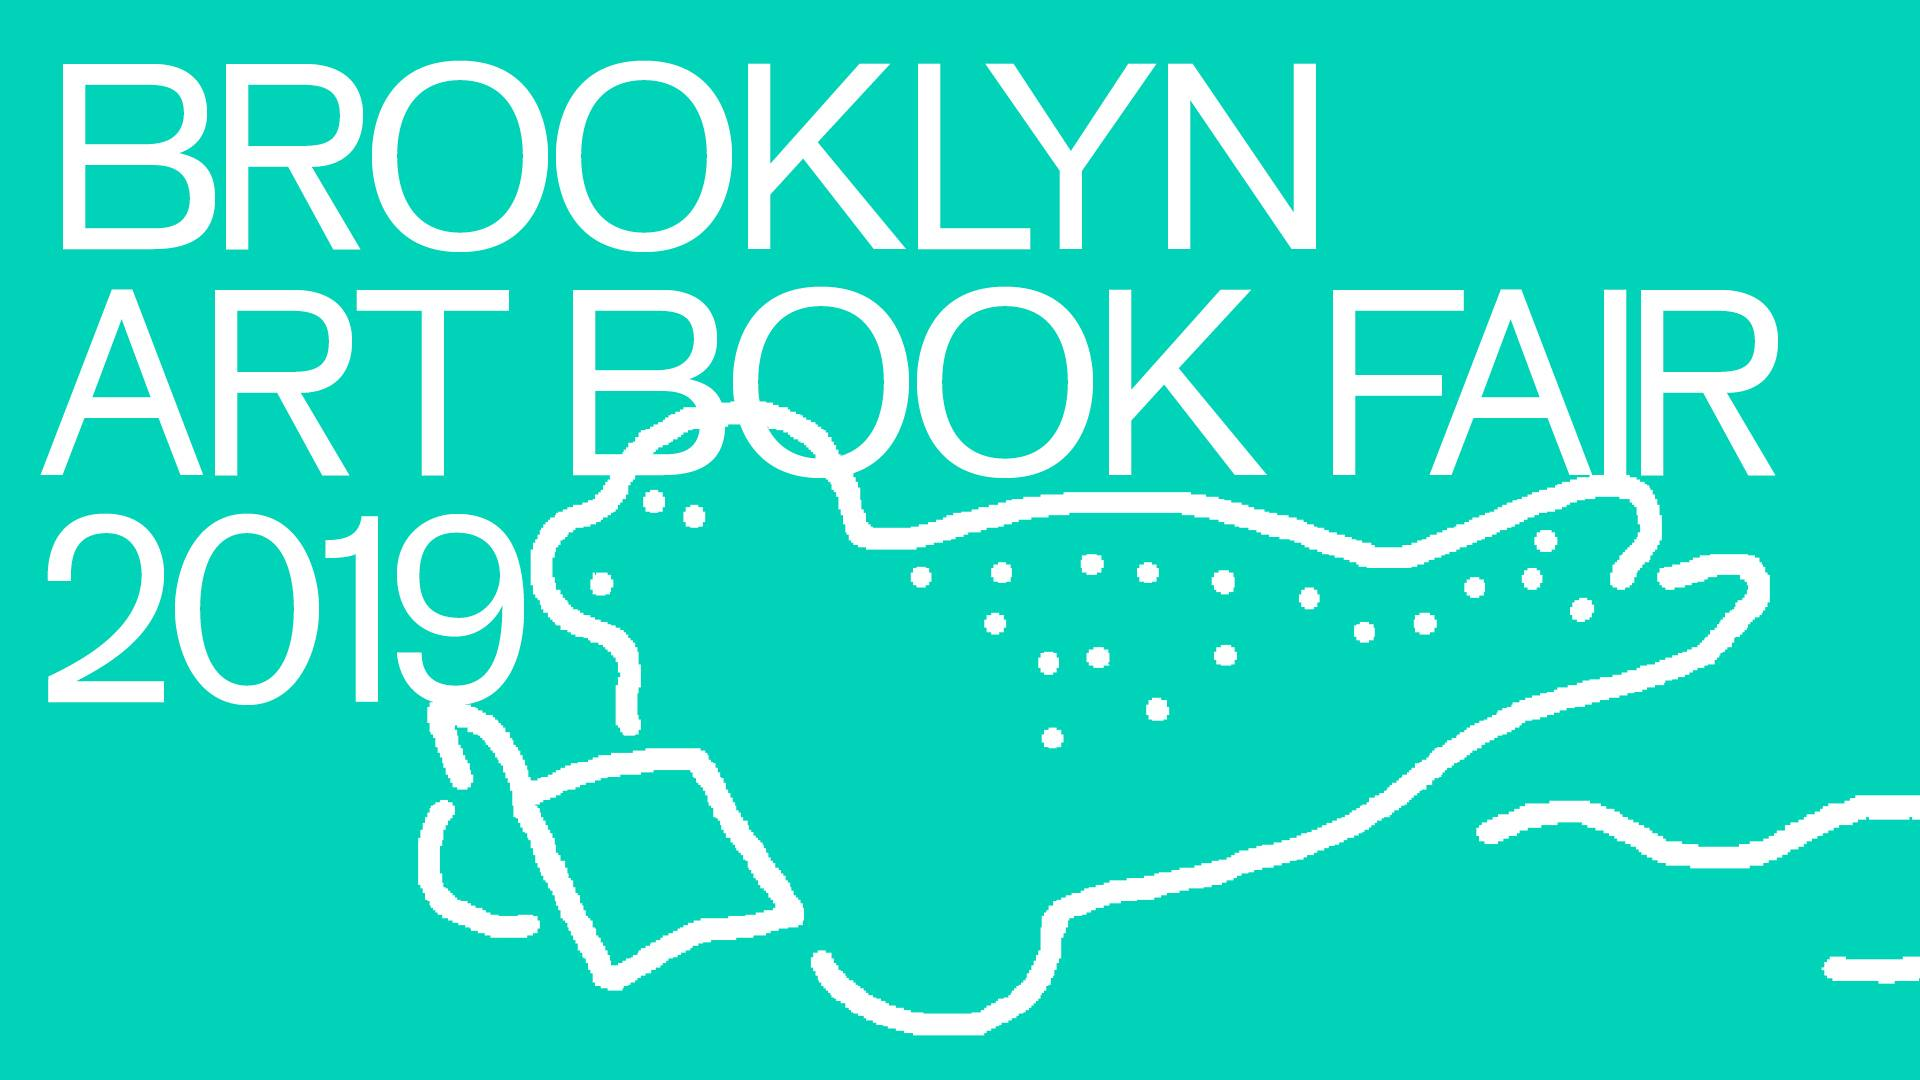 Brooklyn Art Book Fair 2019   June 14-15, 2019